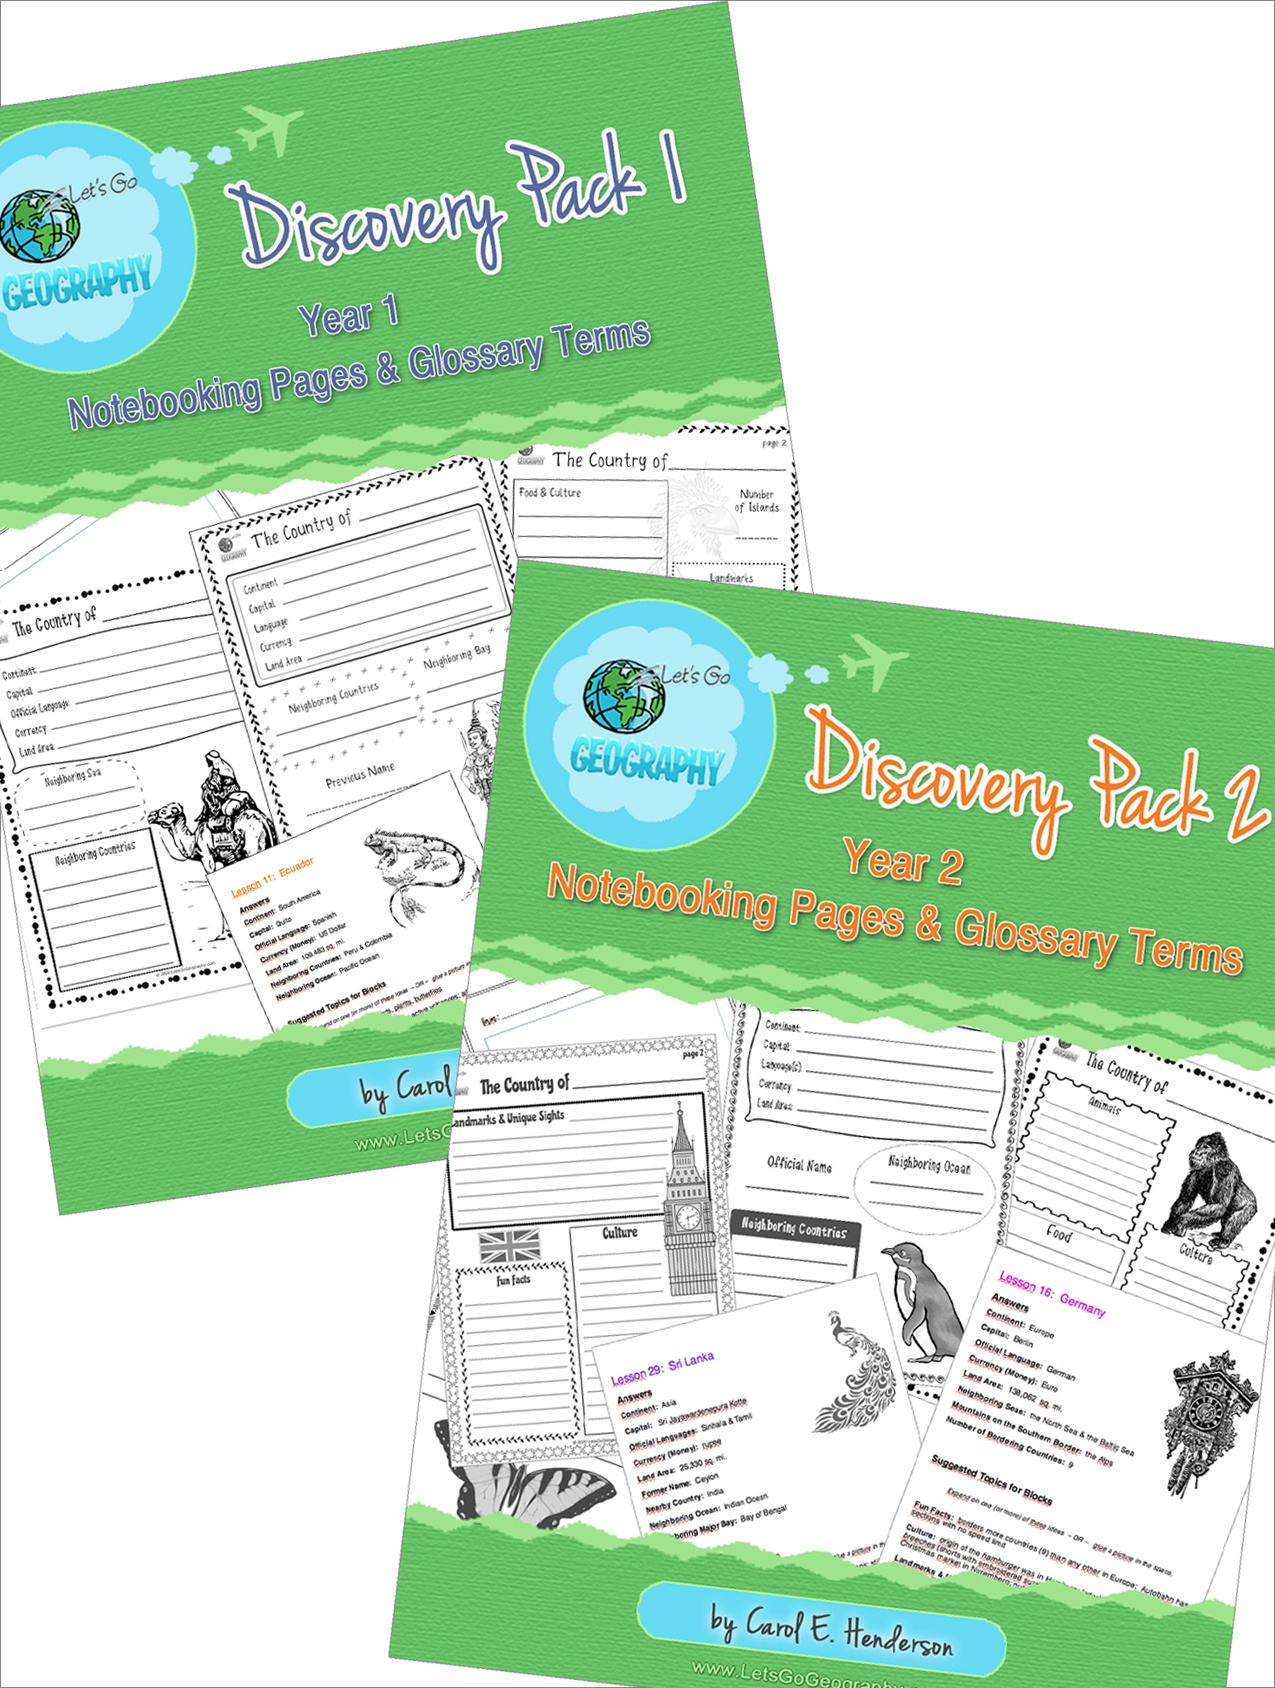 Kids love to write about geography with Notebooking Pages that complement each lesson from Let's Go Geography. The Discovery Pack also comes with a Printable Glossary page and list of all geography terms for every lesson. Grades 3-5. #letsgogeography #geographyforkids #homeschoolgeography